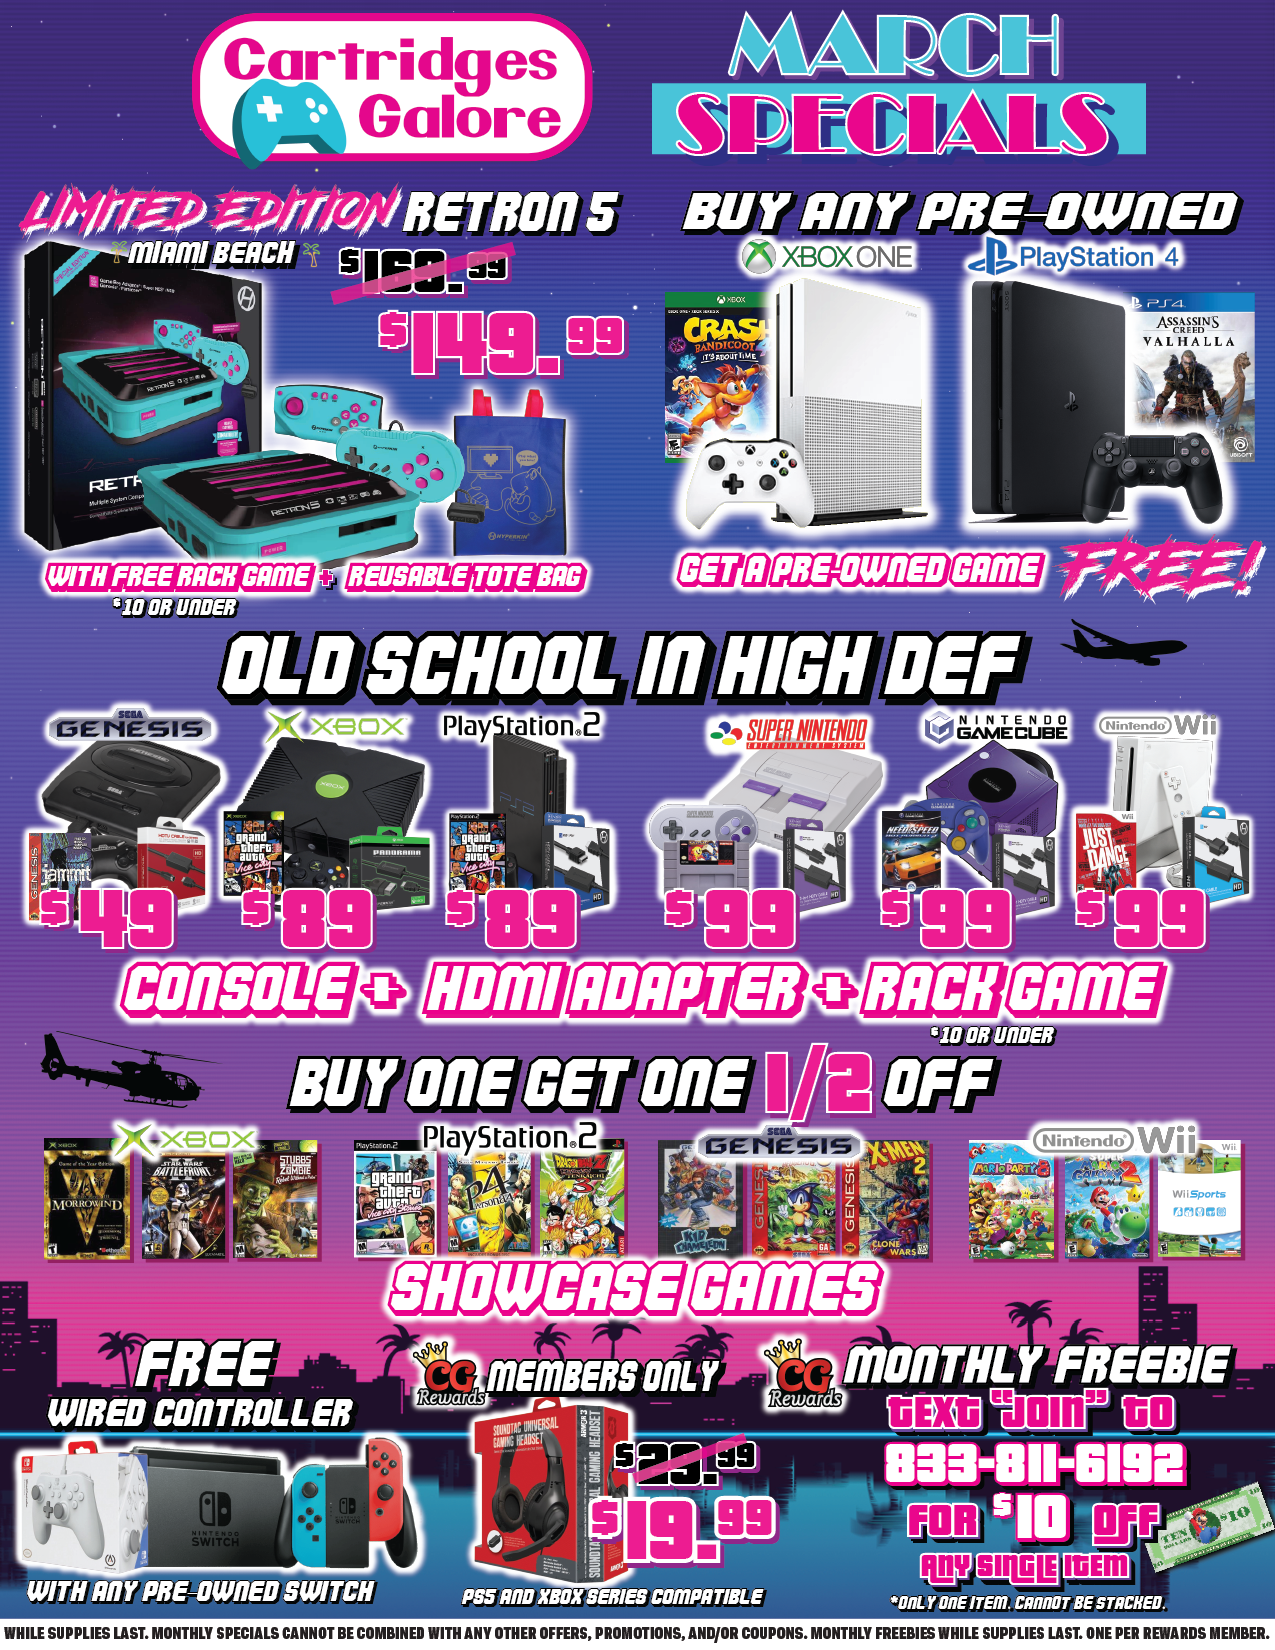 //www.cartridgesgaloregames.com/wp-content/uploads/2021/02/March-Flyer.png